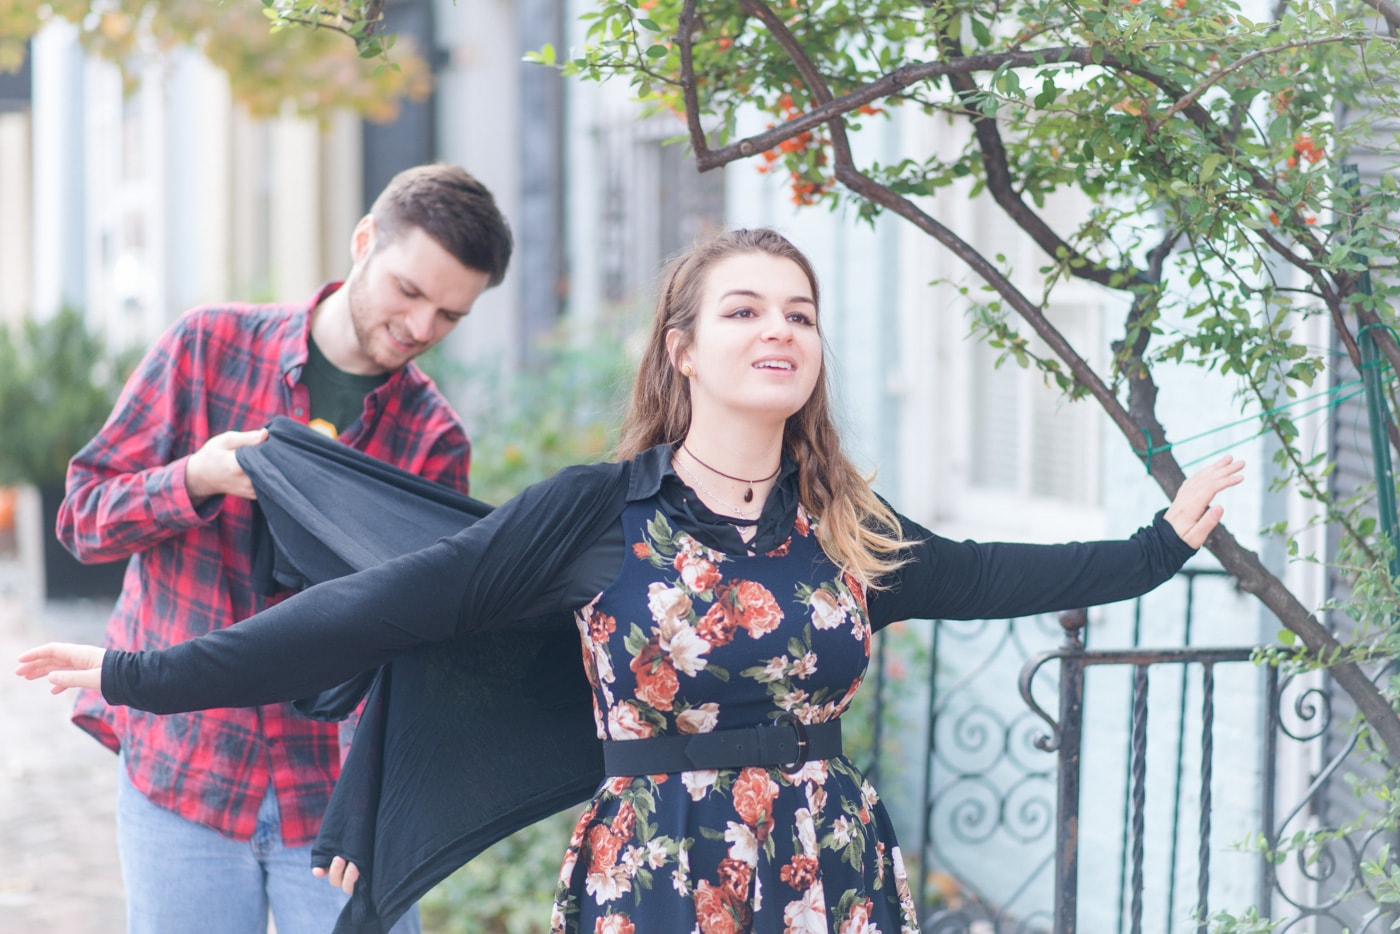 A young woman holds her arms out and looks up like she's flying as her boyfriend tries to hold her sweater out like it's flying in the wind in old town alexandria